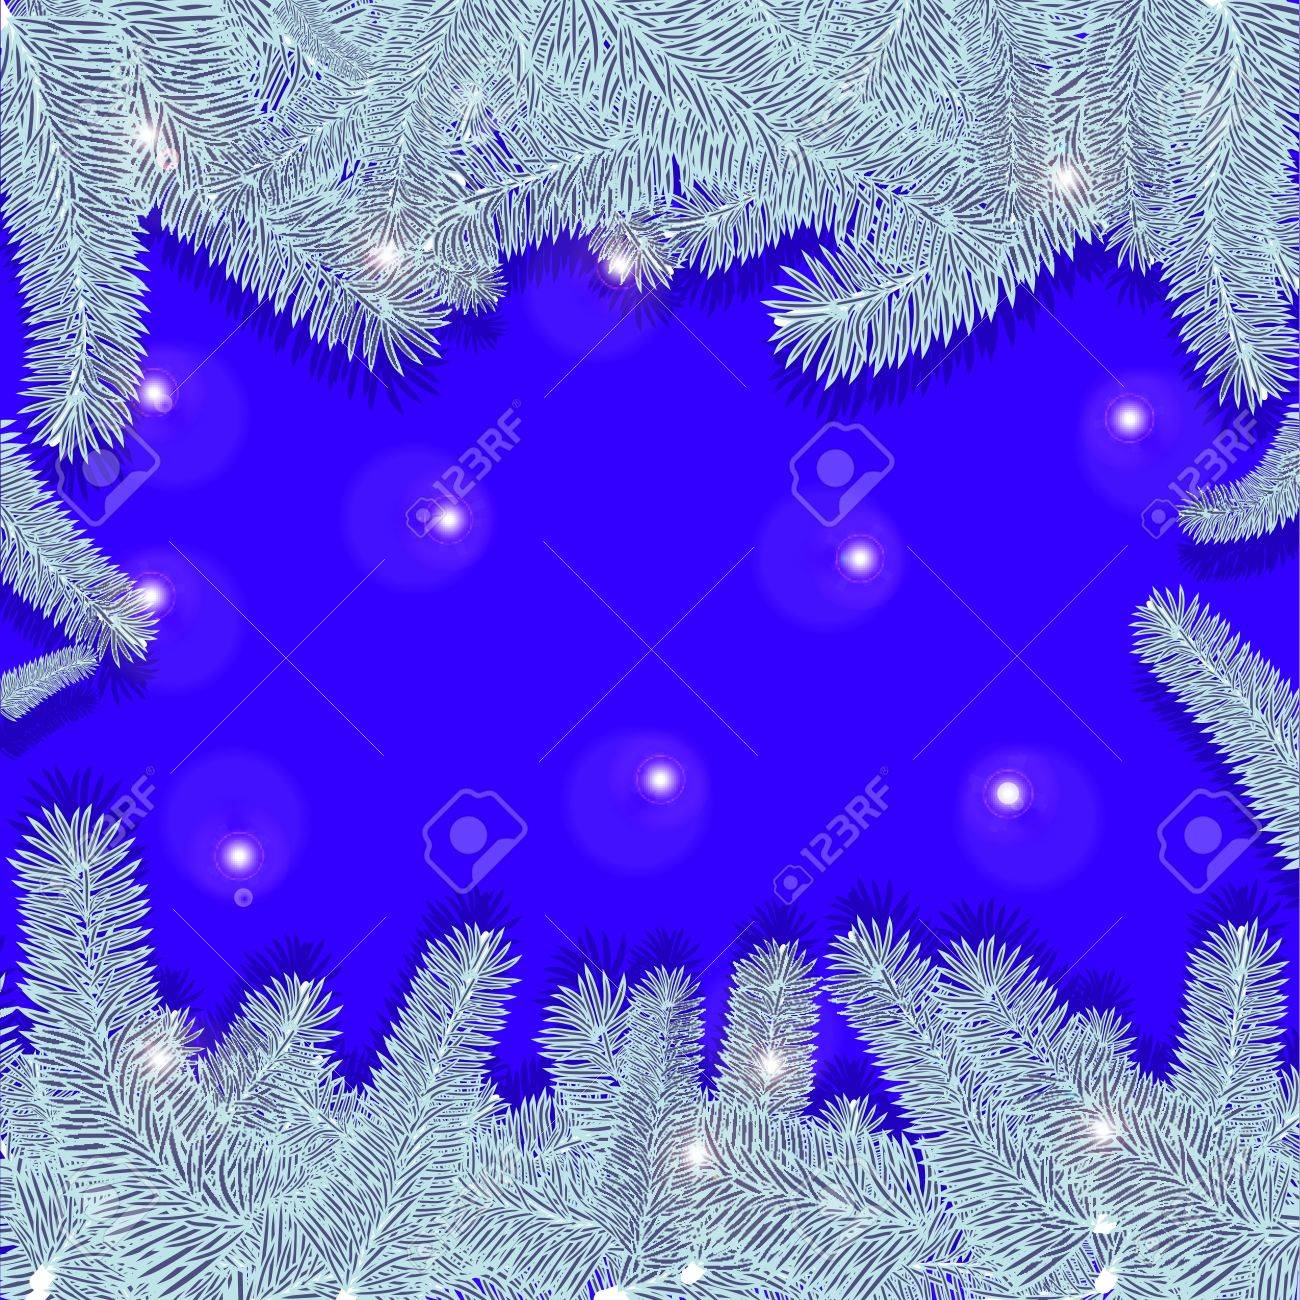 Blue Christmas Background With Silver Trees Stock Vector